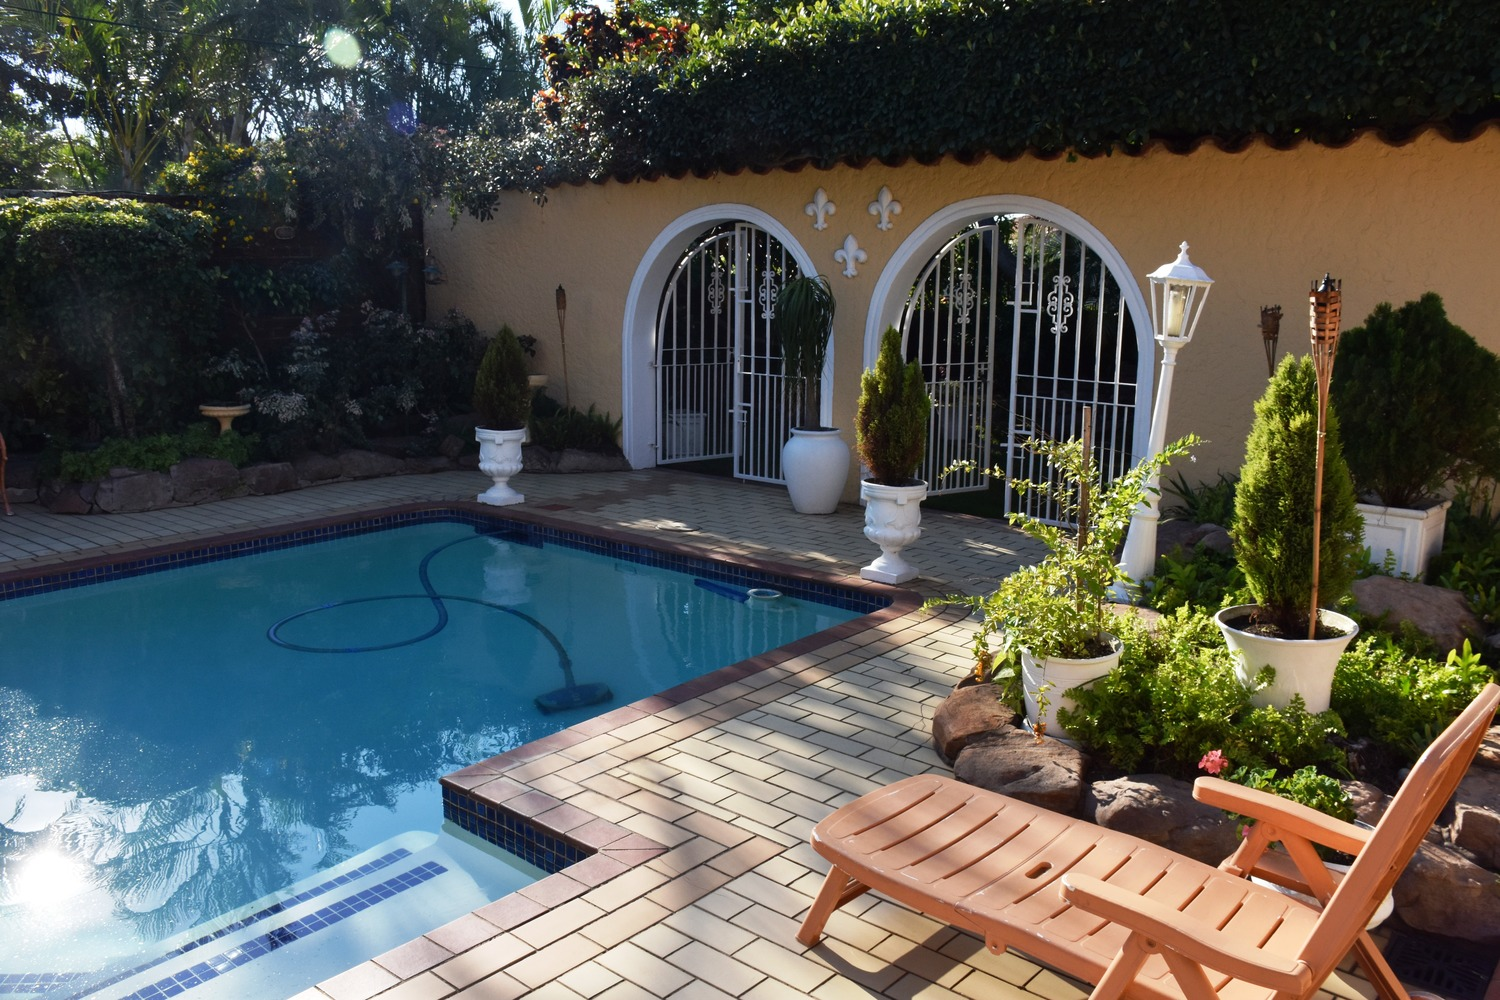 4 Bedroom House for sale in Umhlanga Rocks ENT0031522 : photo#2